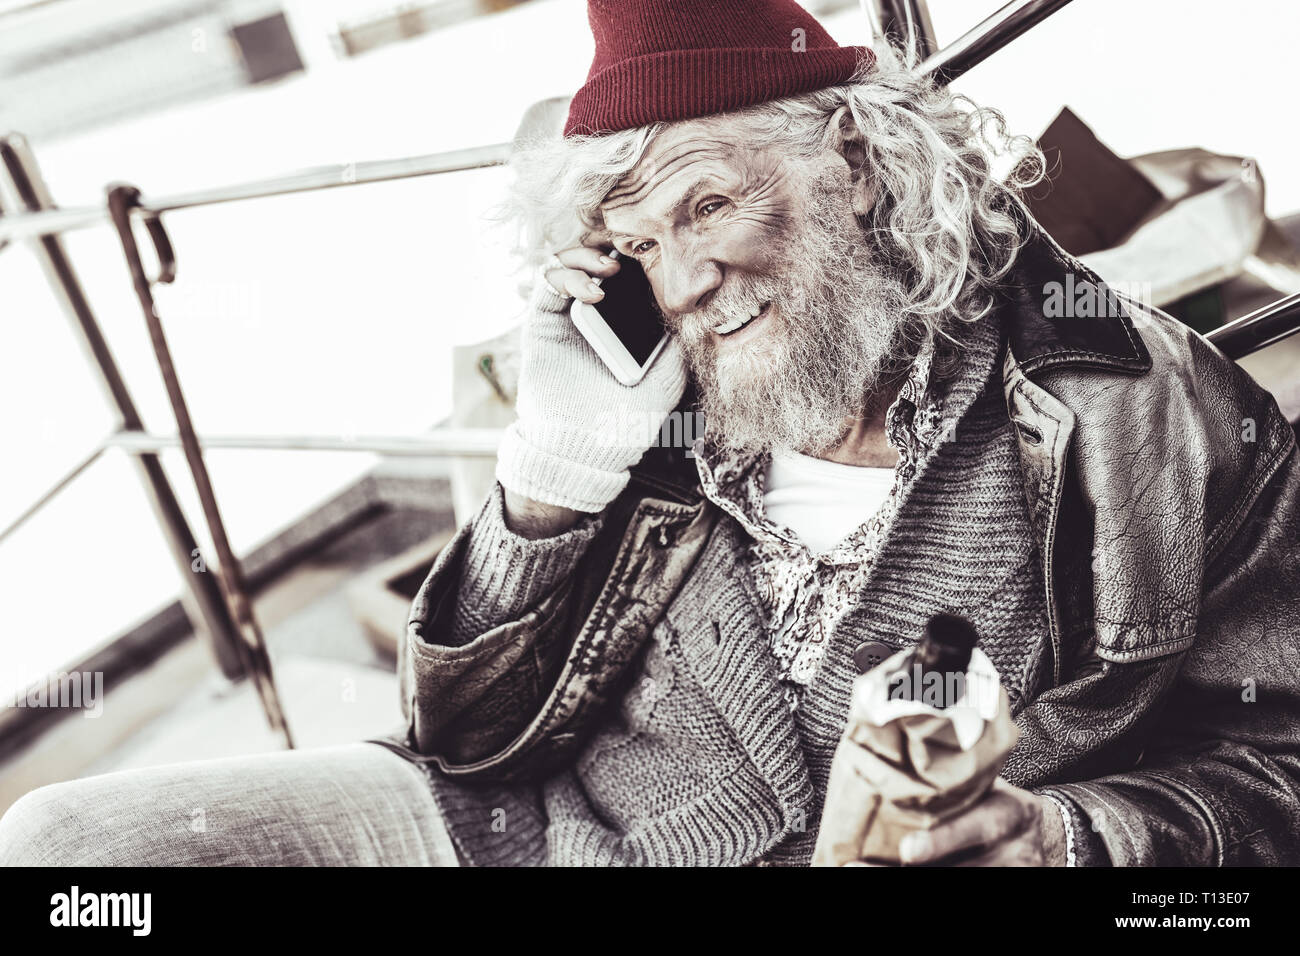 Unhygienic man with bottle in hand calling with smartphone. - Stock Image